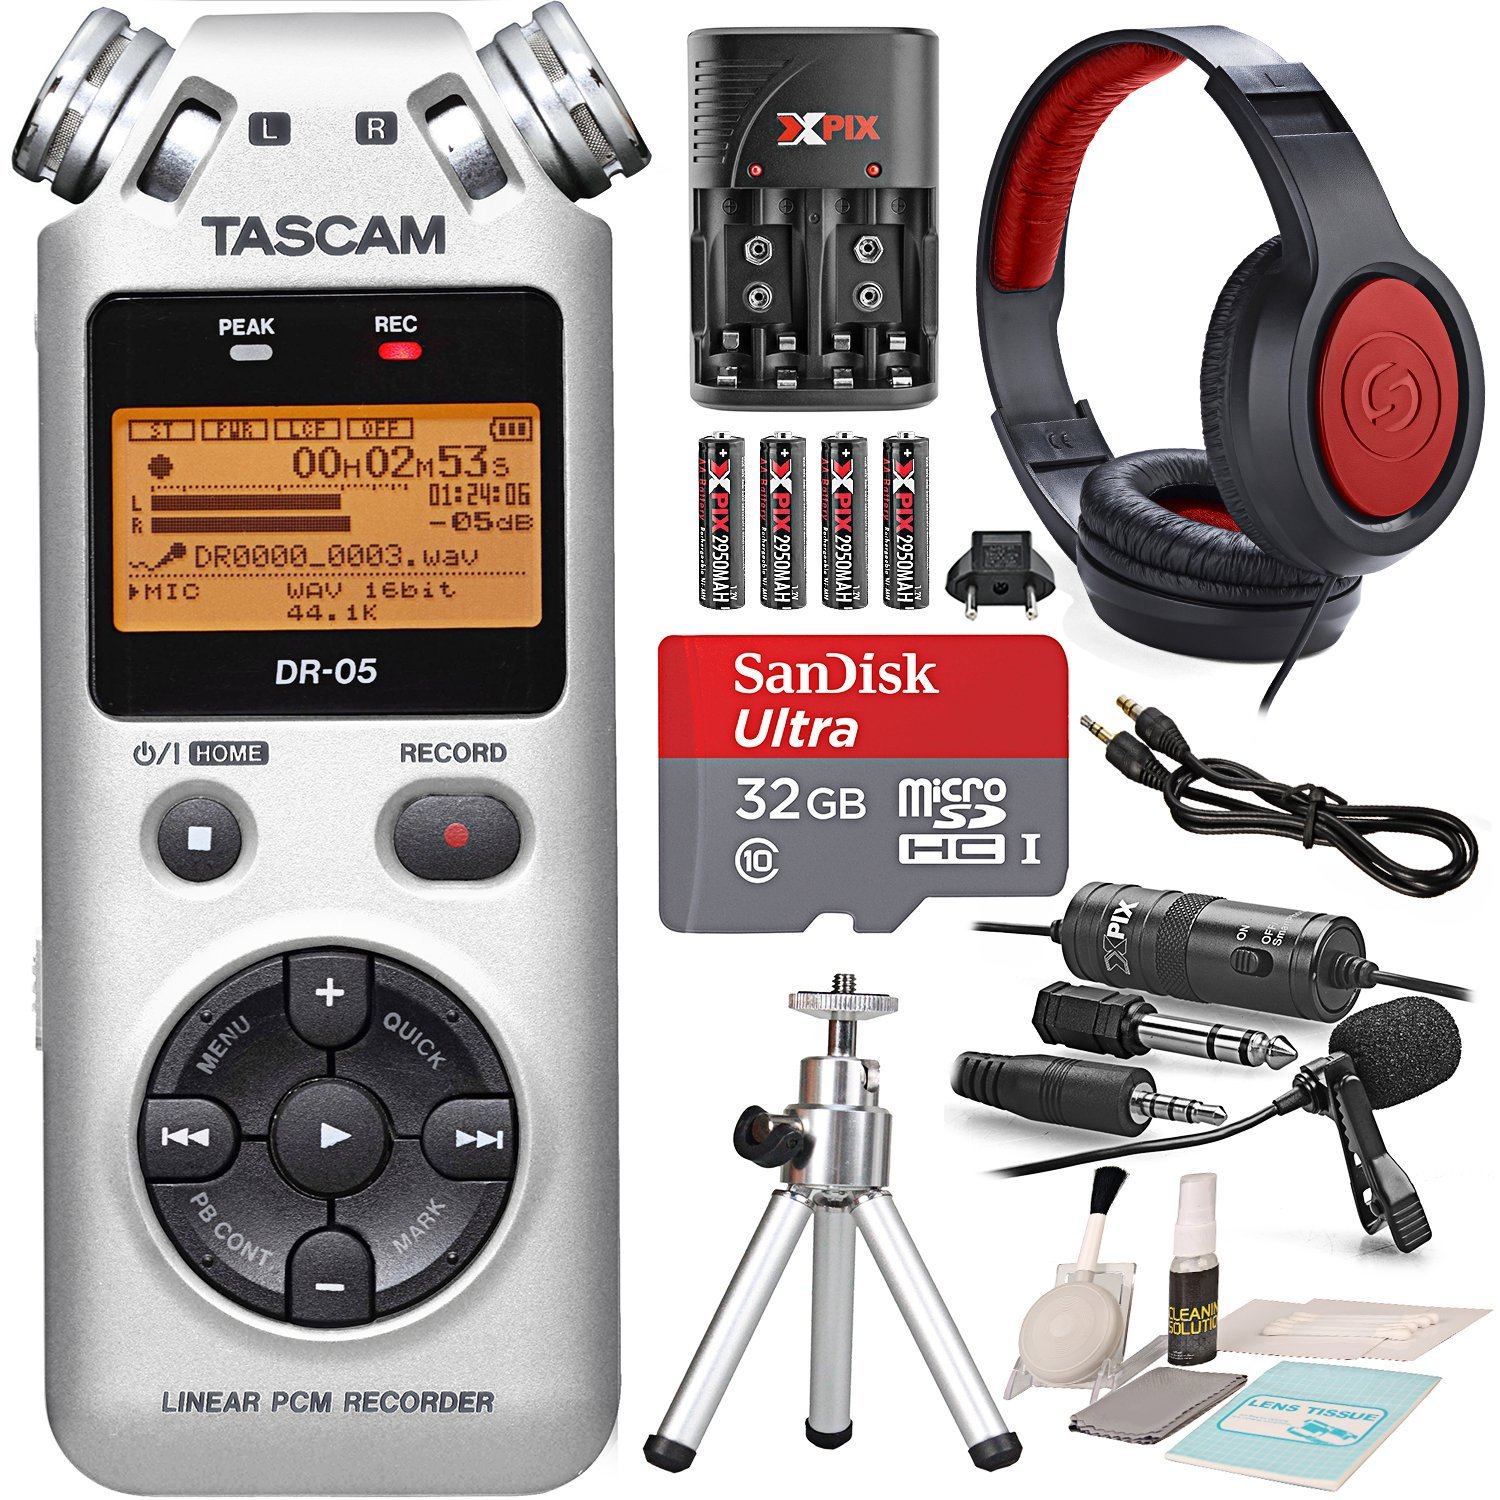 Tascam DR-05 (Version 2) Portable Handheld Digital Audio Recorder (Silver) with Platinum accessory bundle Photo Savings PS-DR-05SILVER